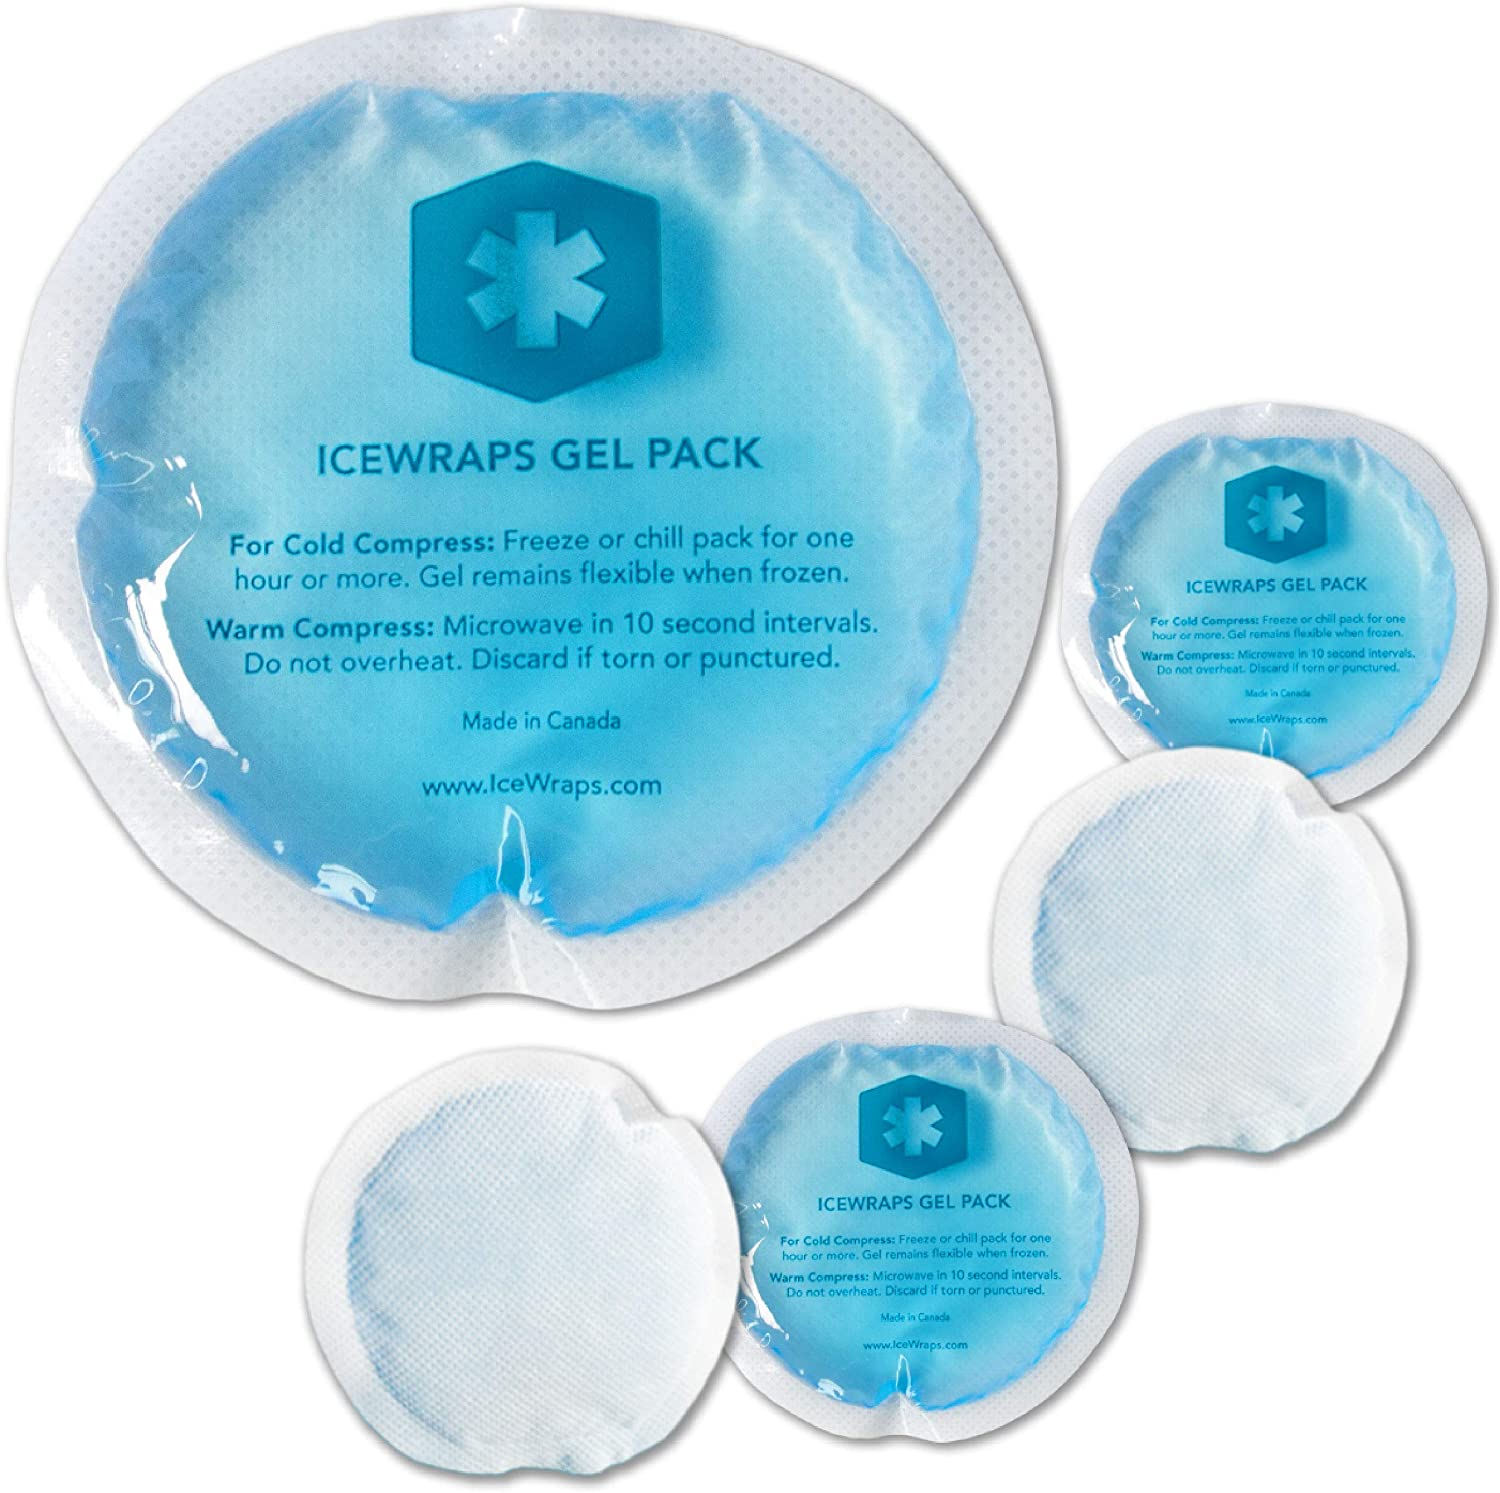 ICEWRAPS Reusable Gel Ice Packs with Cloth Backing - Hot Cold Pack for Kids Injuries, Breastfeeding, Wisdom Teeth, First Aid - Round 5 Pack: Health & Personal Care